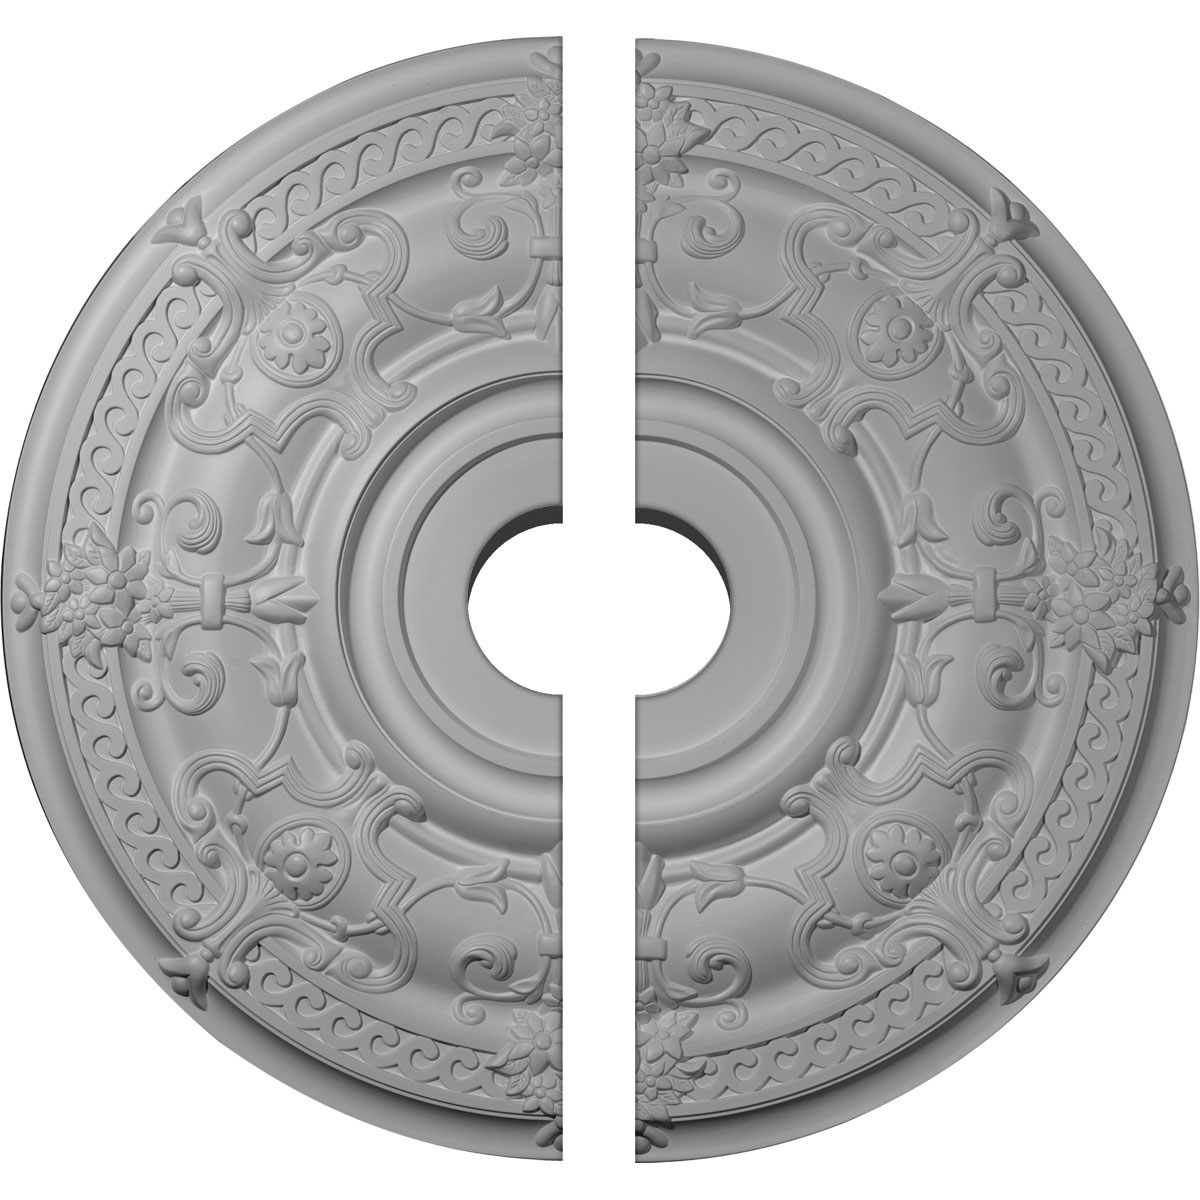 """33 7/8""""OD x 6""""ID x 1 3/8""""P Dauphine Ceiling Medallion, Two Piece (Fits Canopies up to 13 1/4"""")"""